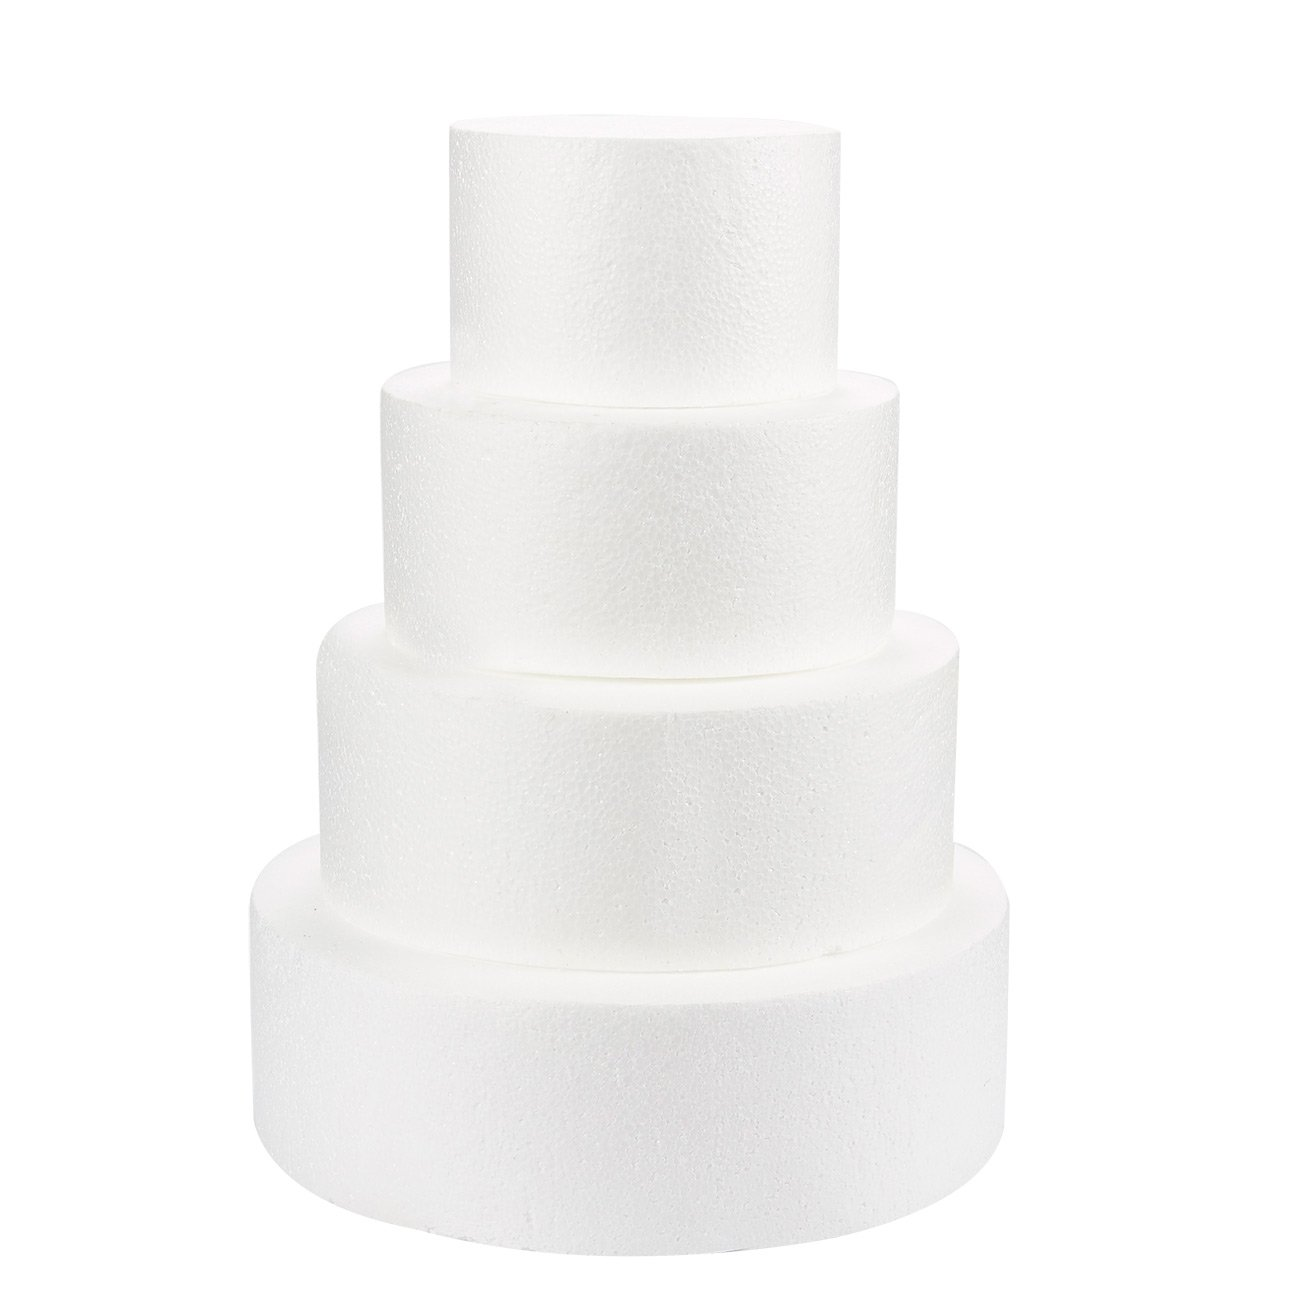 Round Cake Dummy - 4-Piece Polystyrene Foam Dummy Cake for Wedding Display Window, Decorating Competition, 6, 8, 10, 12 inches Diameter, 4 inches Tall Juvale